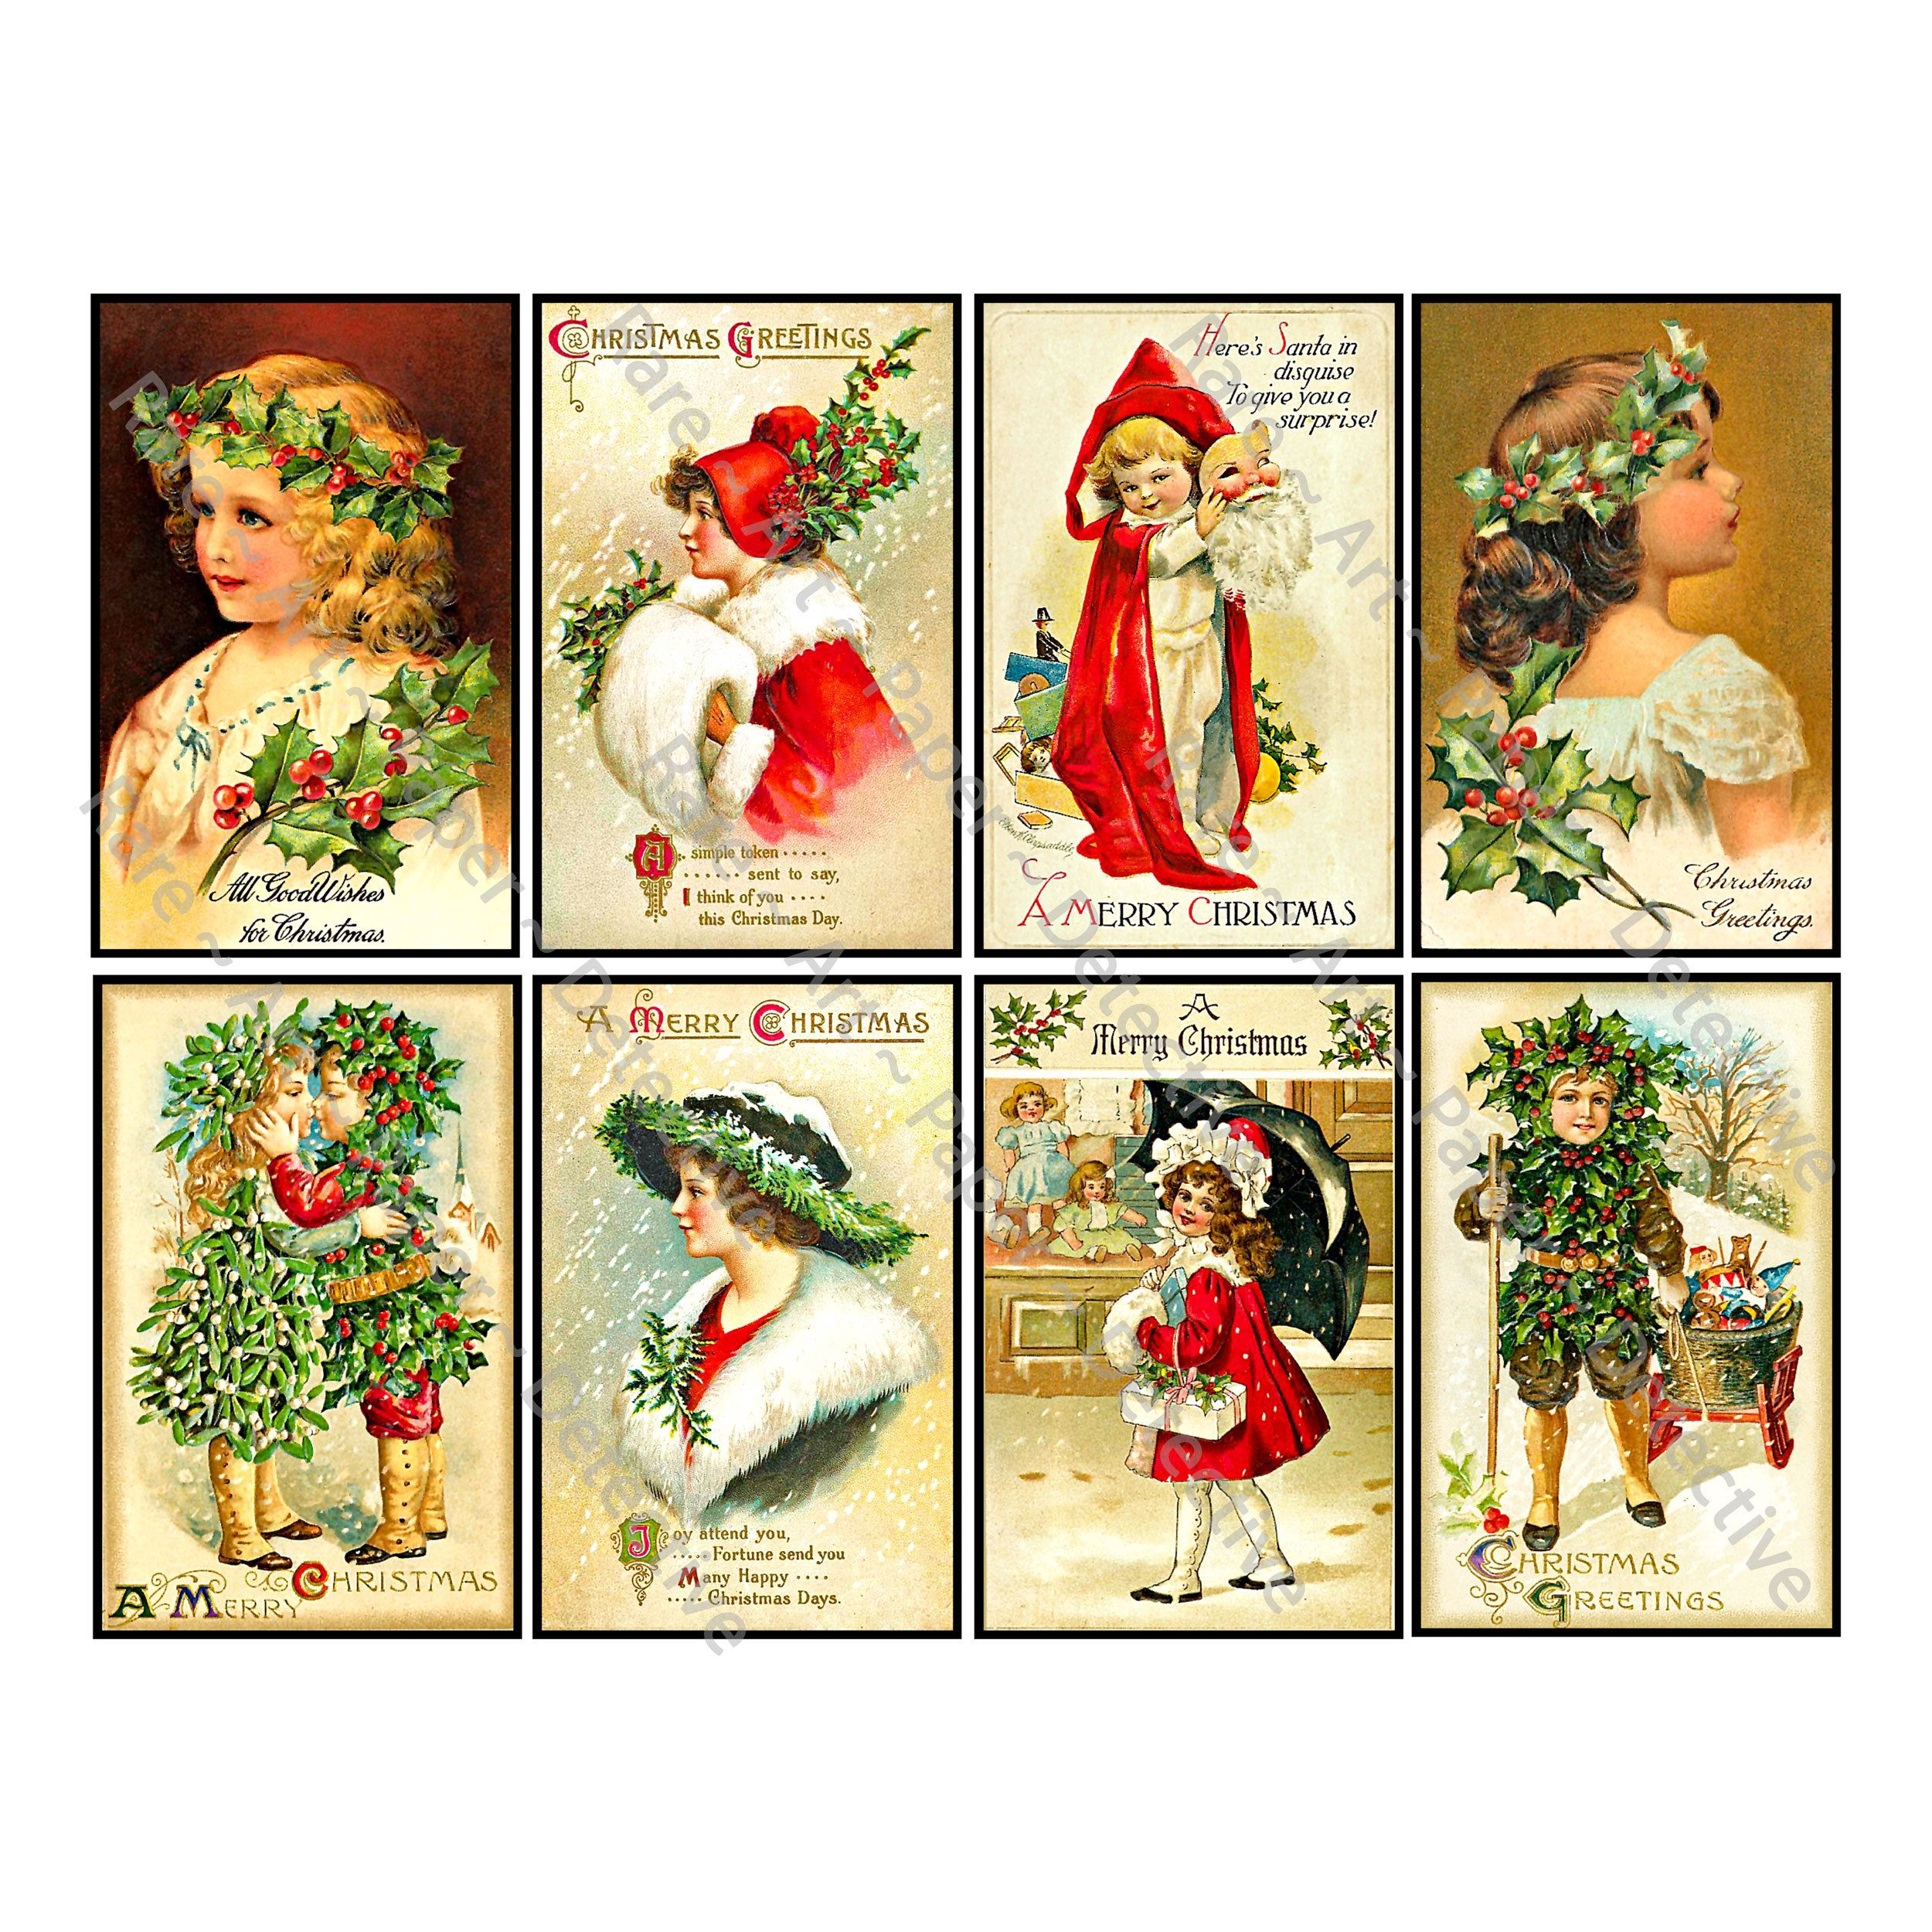 8 Pcs Christmas Stickers Deluxe Set Of Old Fashioned Etsy In 2020 Merry Christmas Vintage Christmas Stickers Merry Christmas Greetings